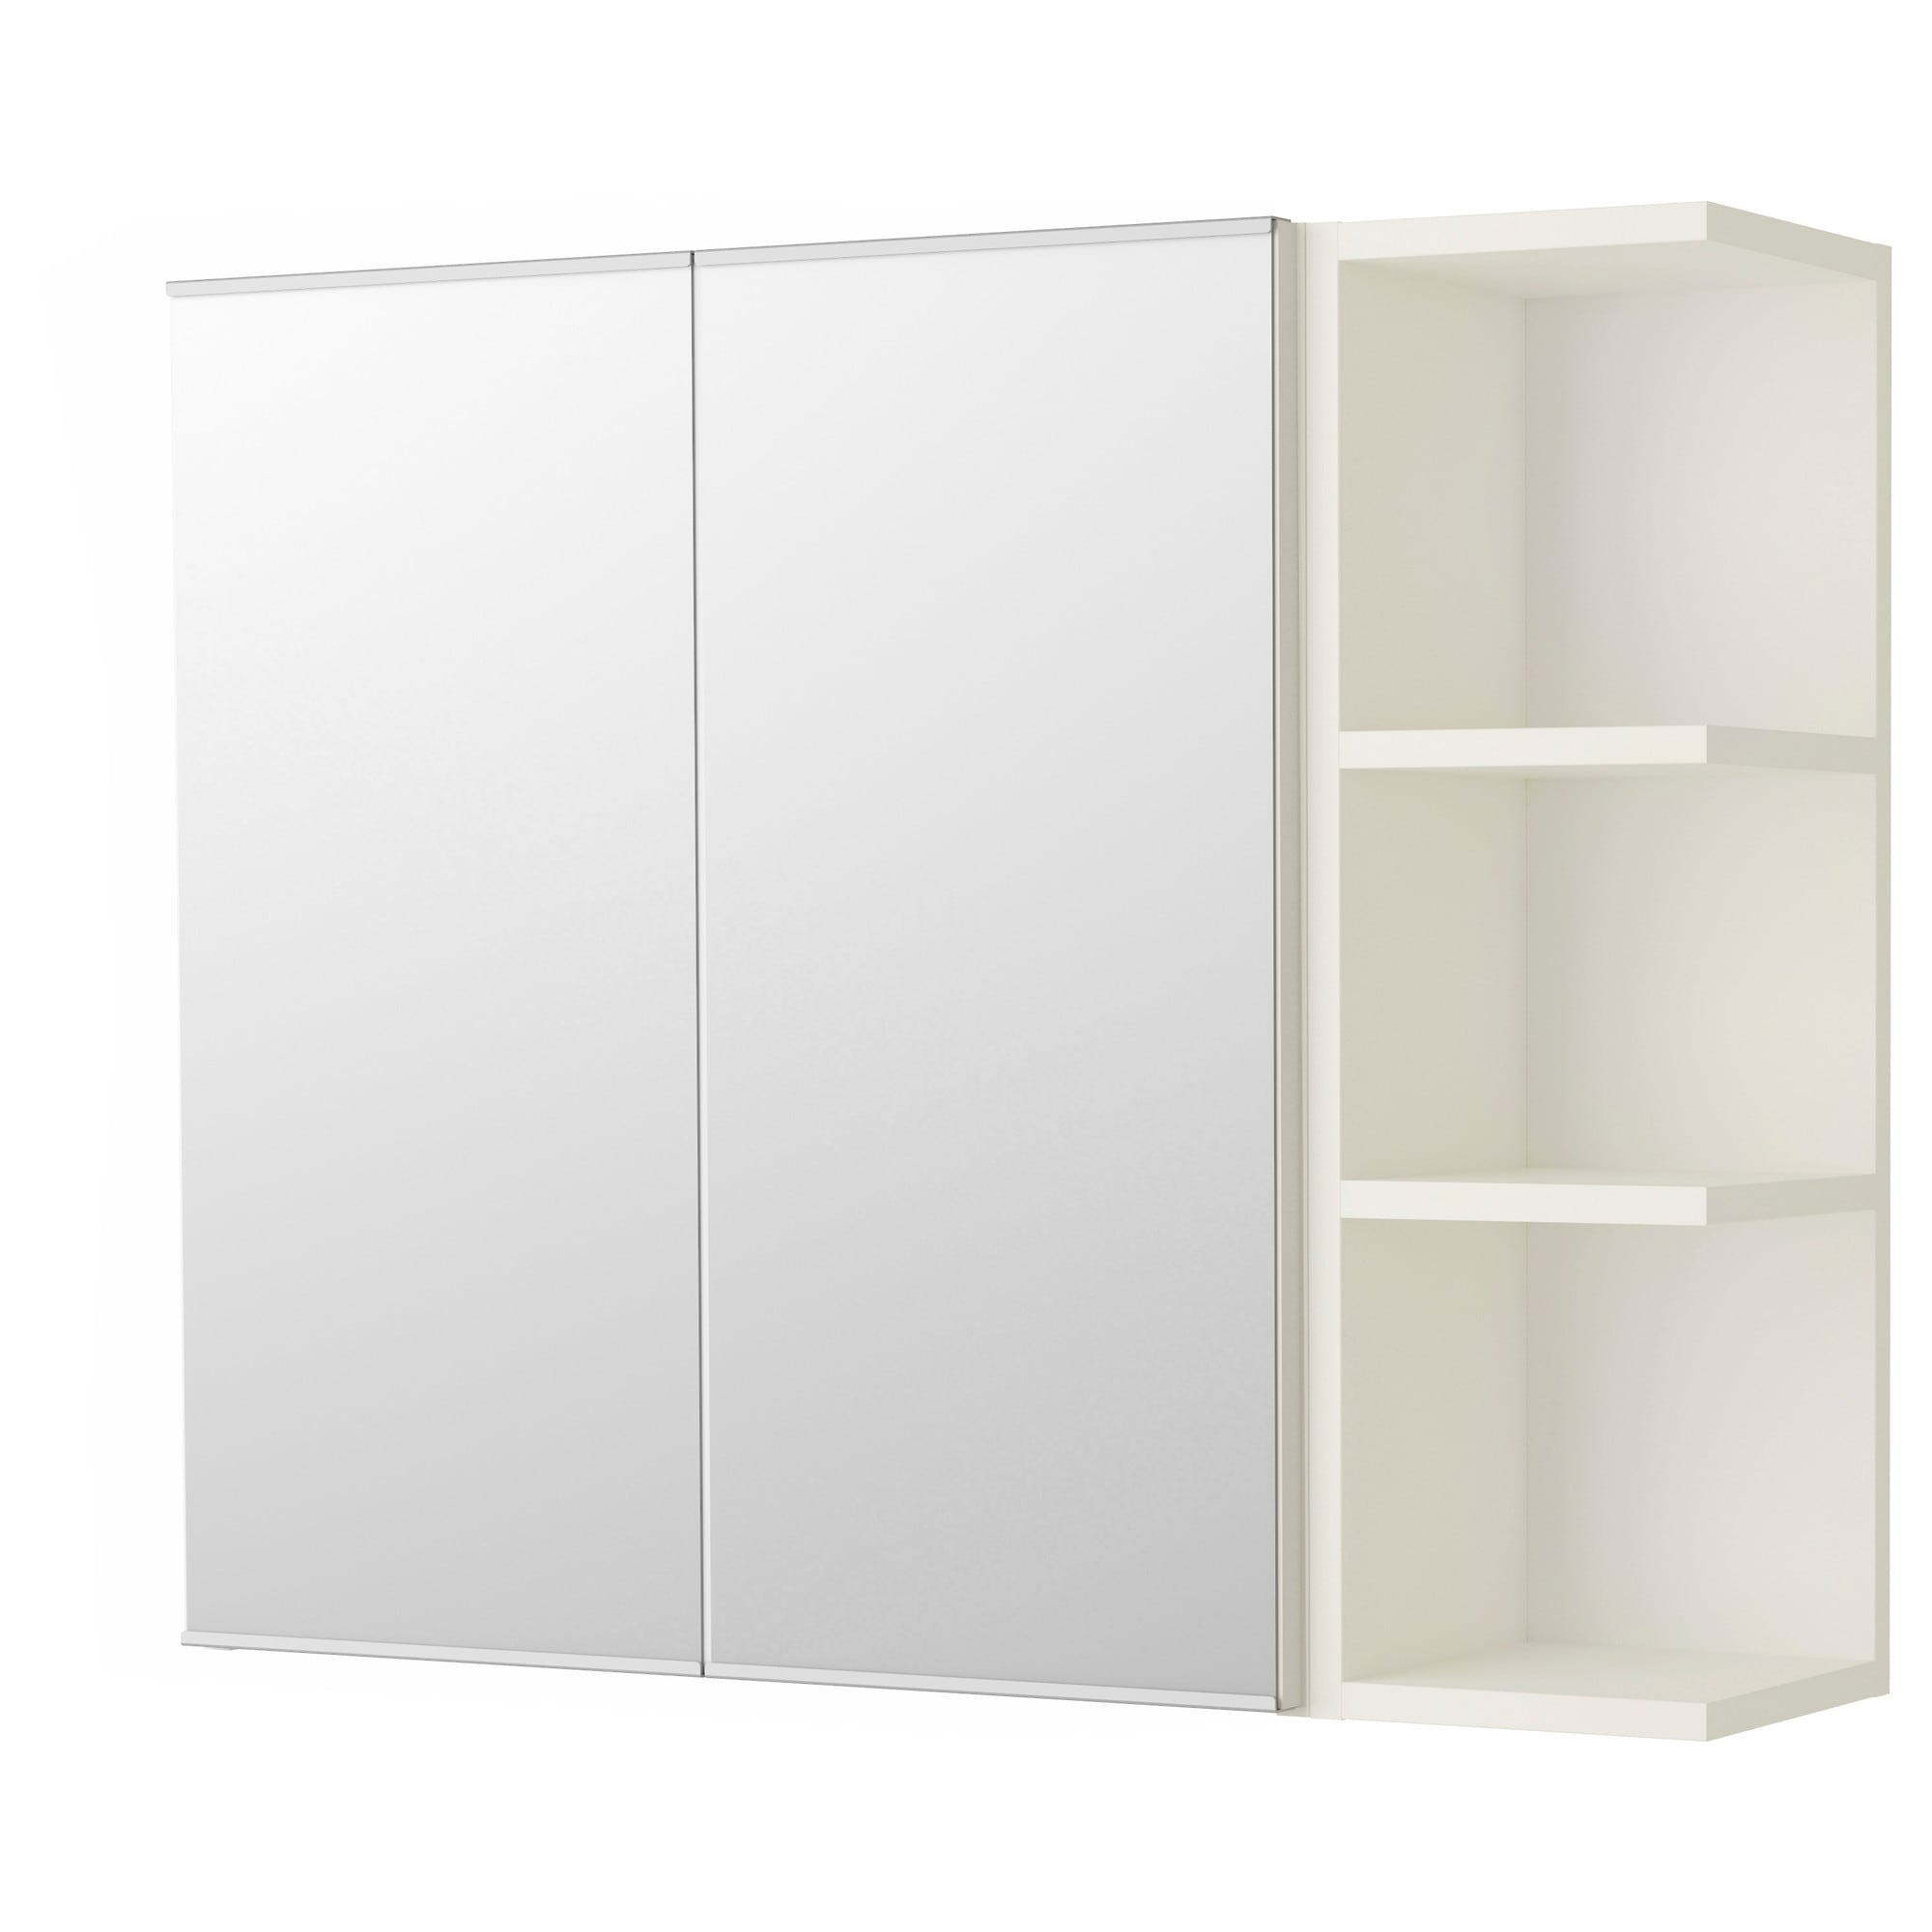 Bathroom mirror cabinets ikea - Bathroom Mirror Cabinets Ikea 1